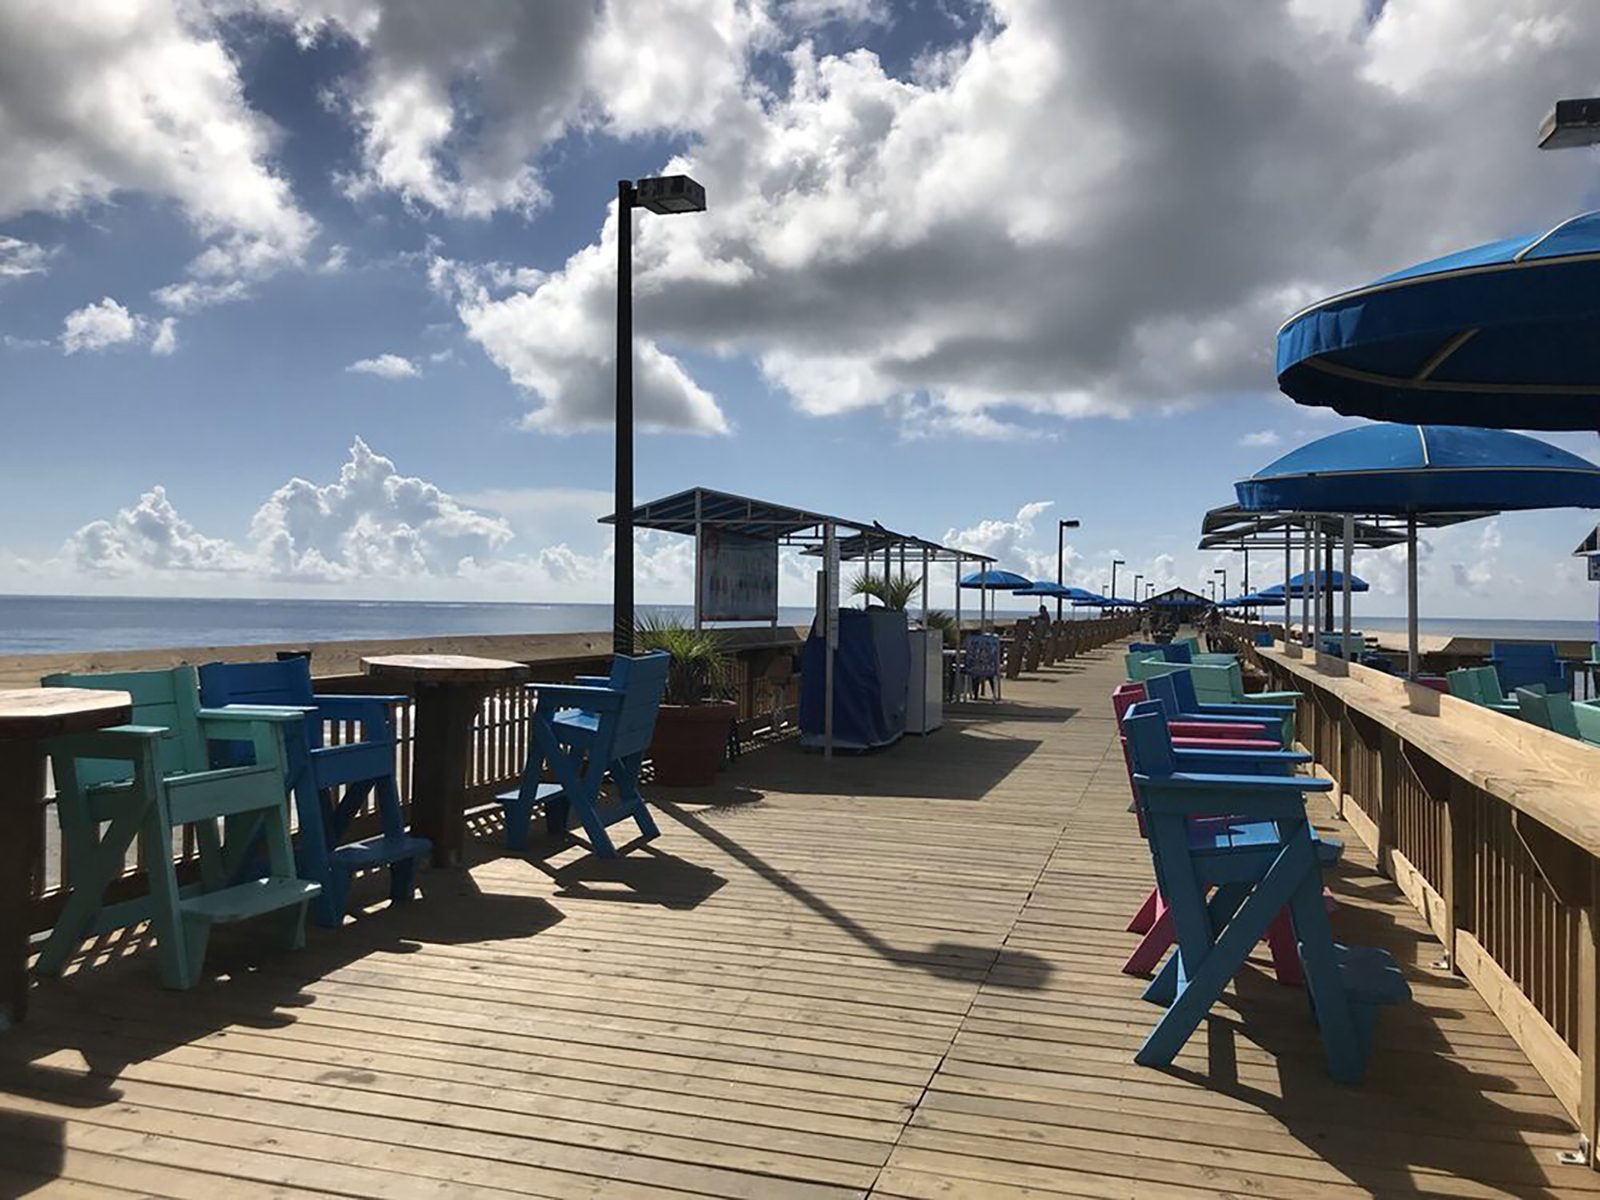 Consistently Voted Best Fishing And Entertainment Pier! Garden City ...